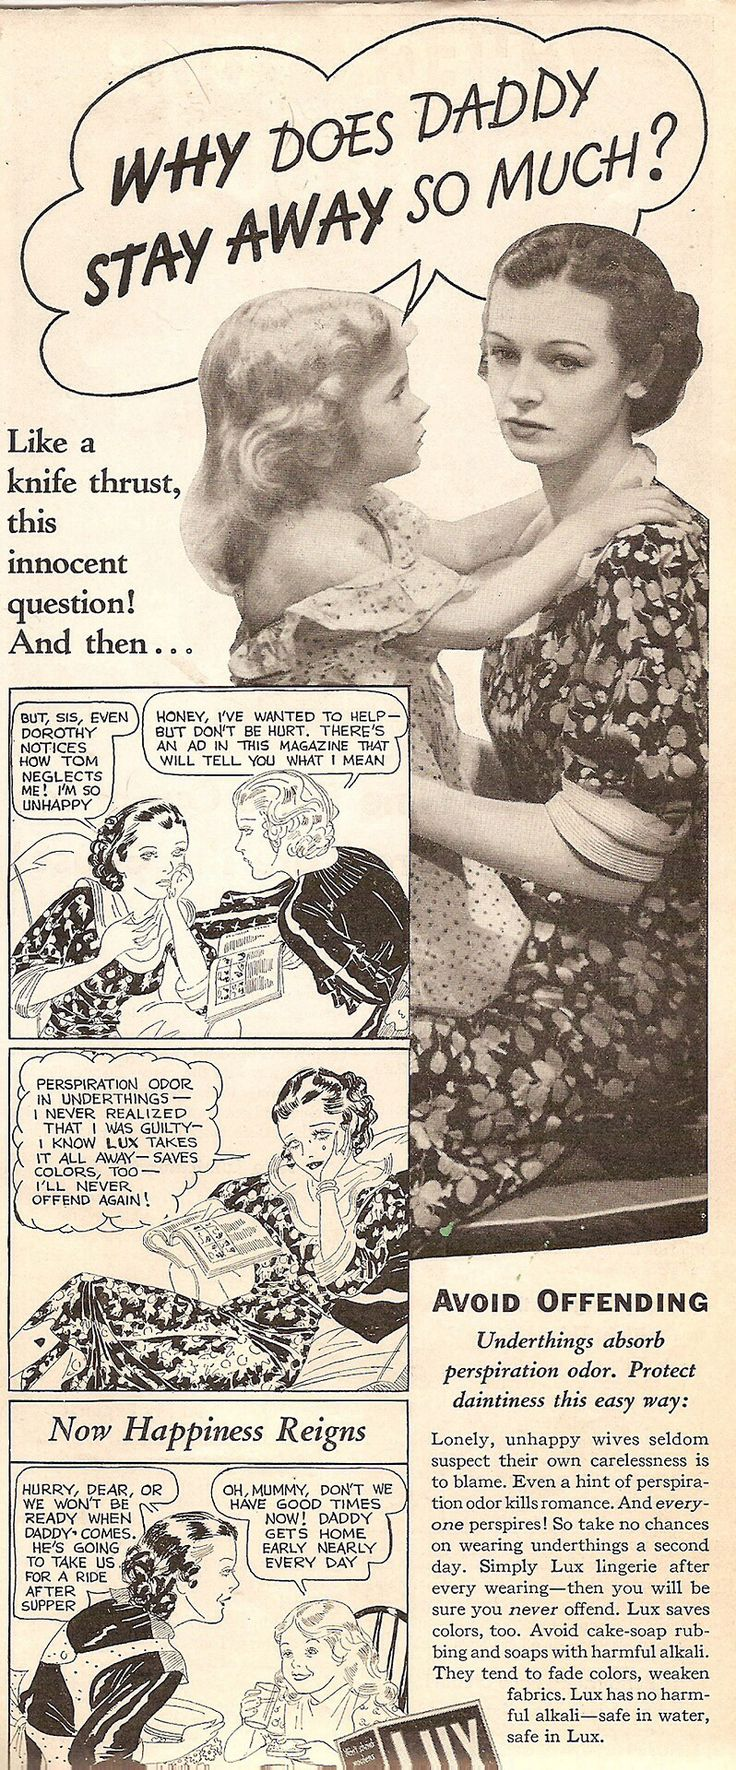 Daddy gets home early because her underthings have no more perspiration odor... Ad (1934).